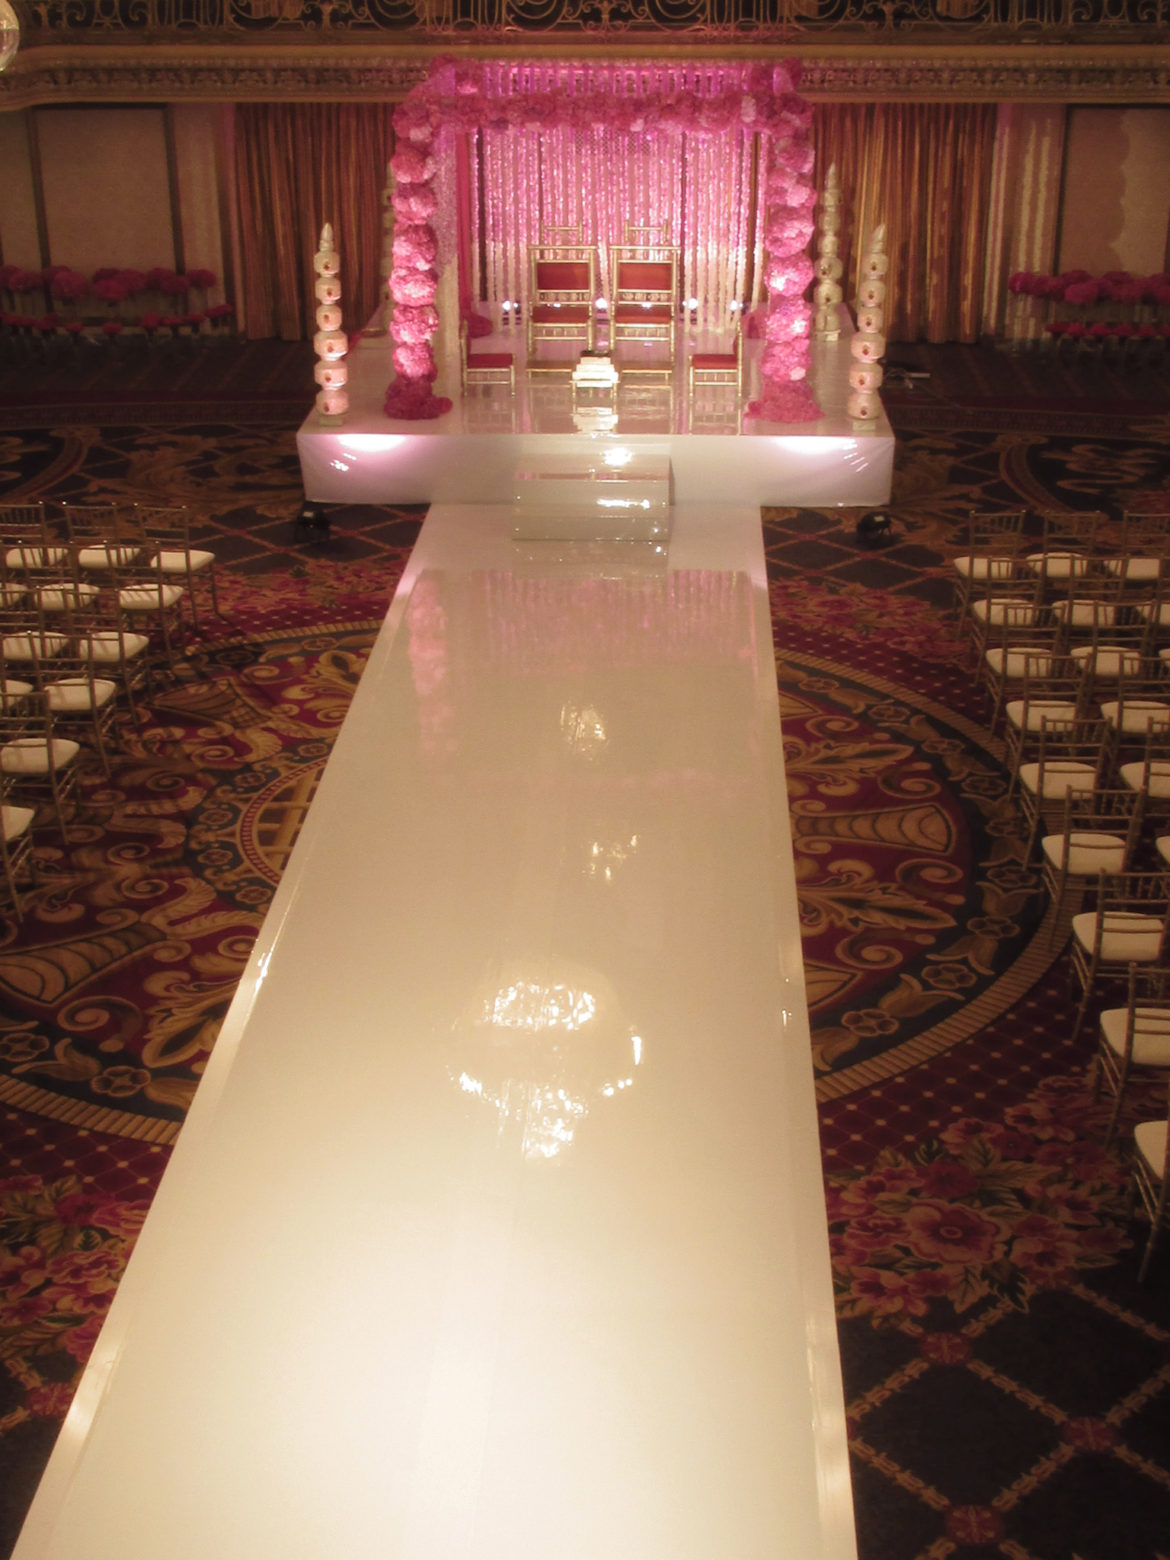 Elegant_Event_Lighting_Chicago_Hilton_Wedding_White_Vinyl_Stage_Runner